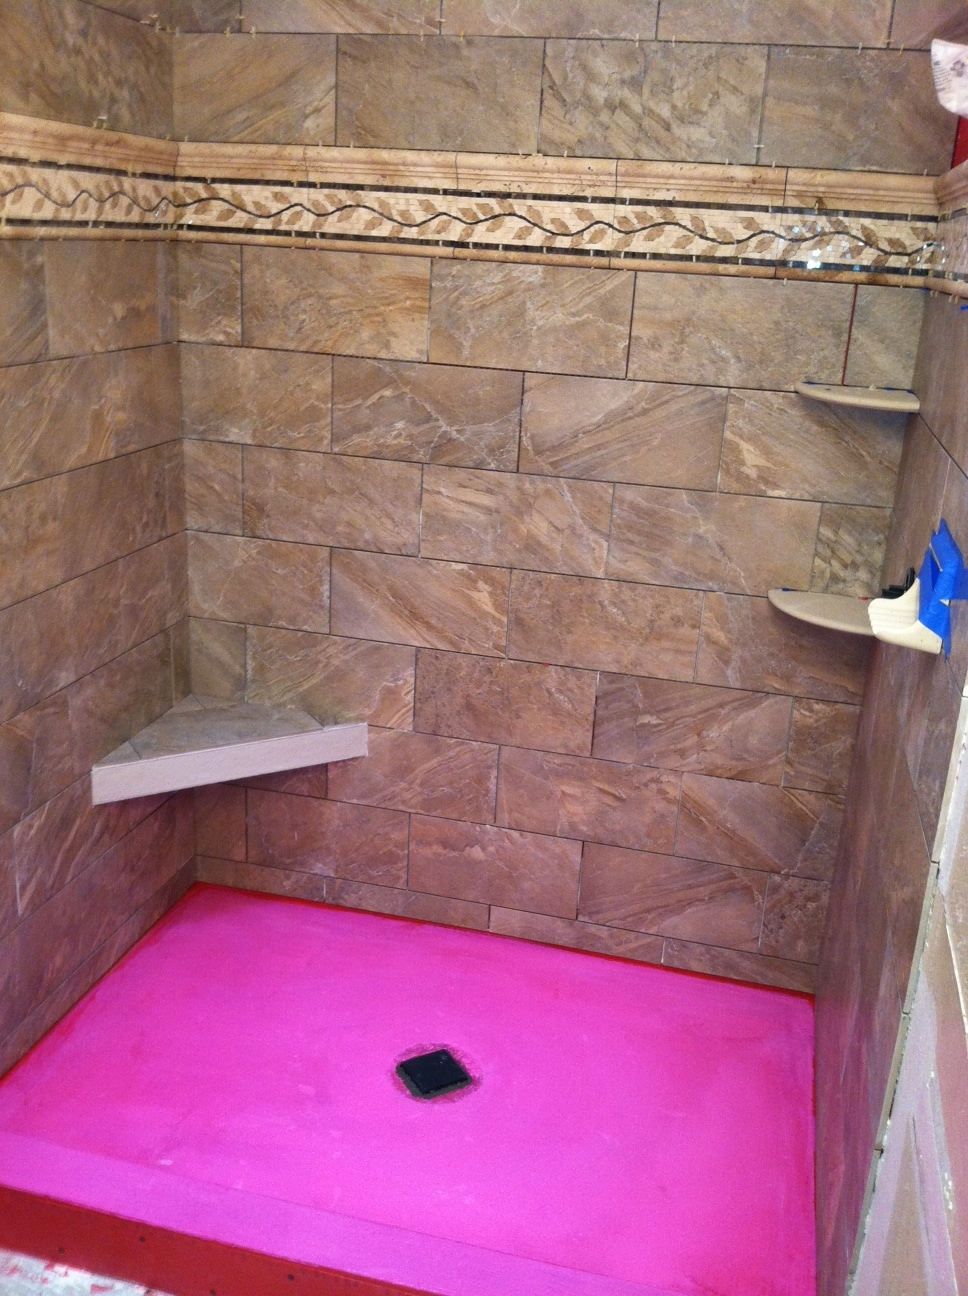 Tile Contractor Temecula Ca Expert Waterproofing Shower Remodel - Bathroom remodel temecula